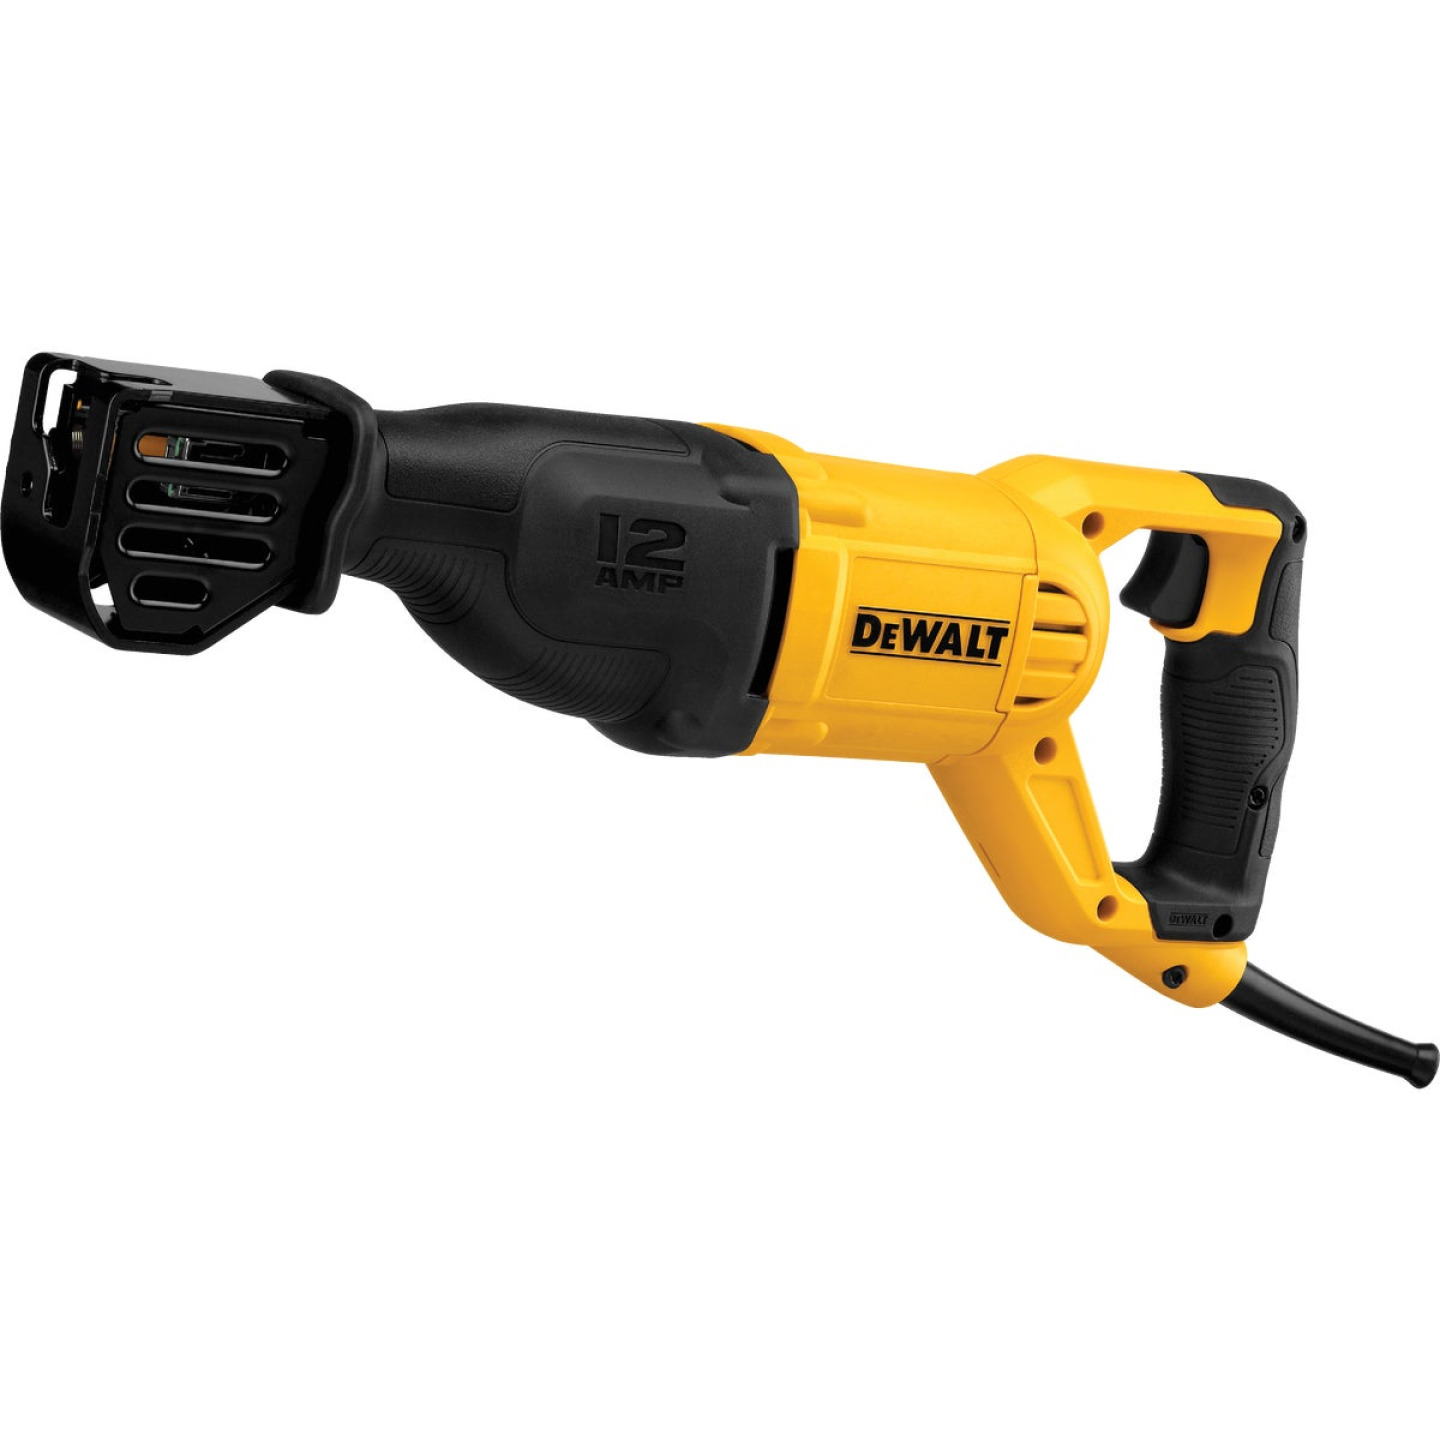 DeWalt 12-Amp Reciprocating Saw Image 9